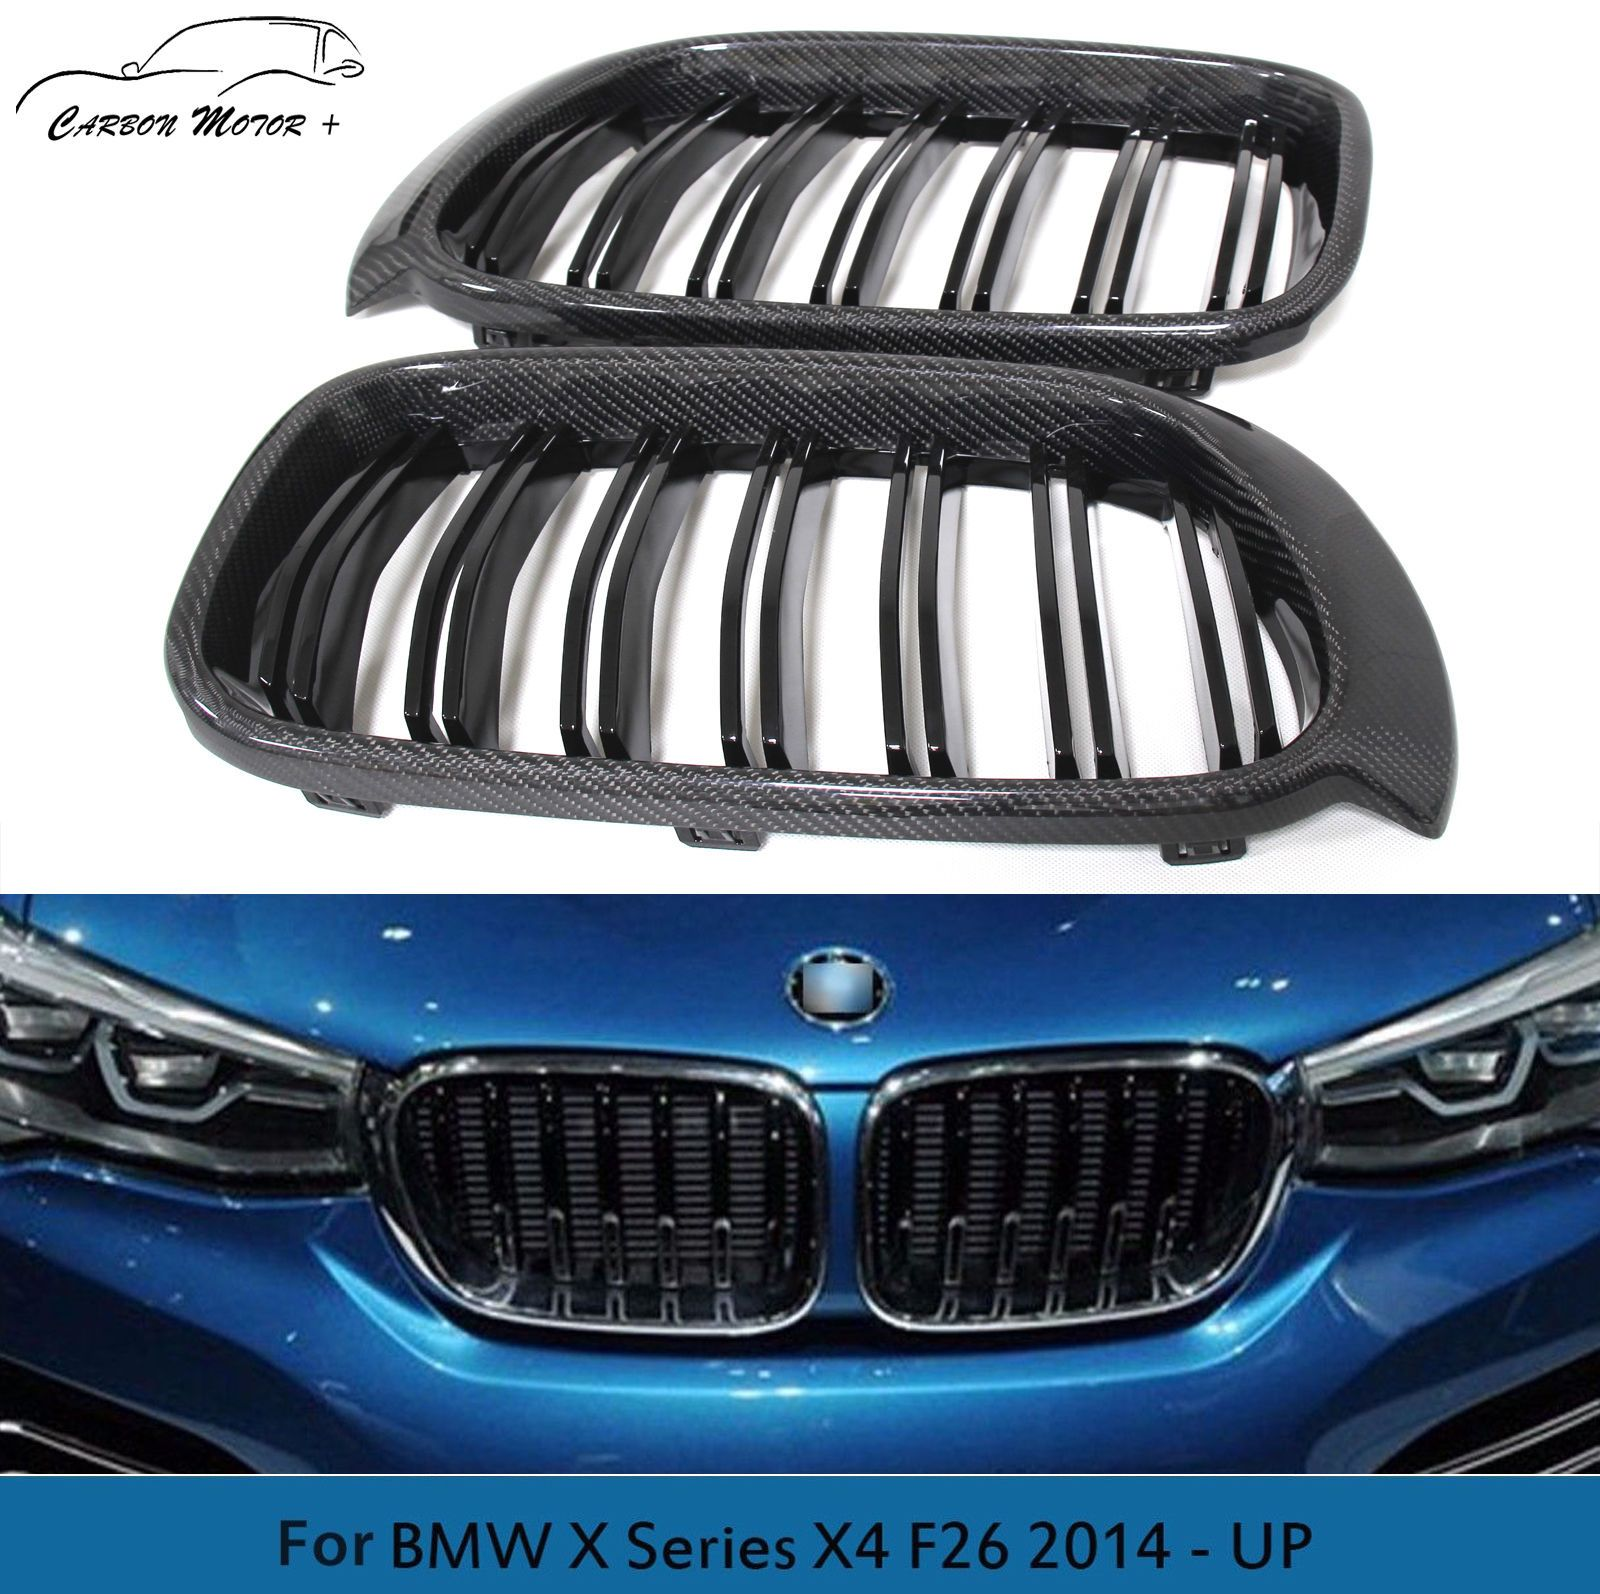 2014 5 bmw x5 m amp x6 m f85 f86 page 5 - Carbon Fiber Front Grille M Look Tuning For Bmw X3 F25 X4 F26